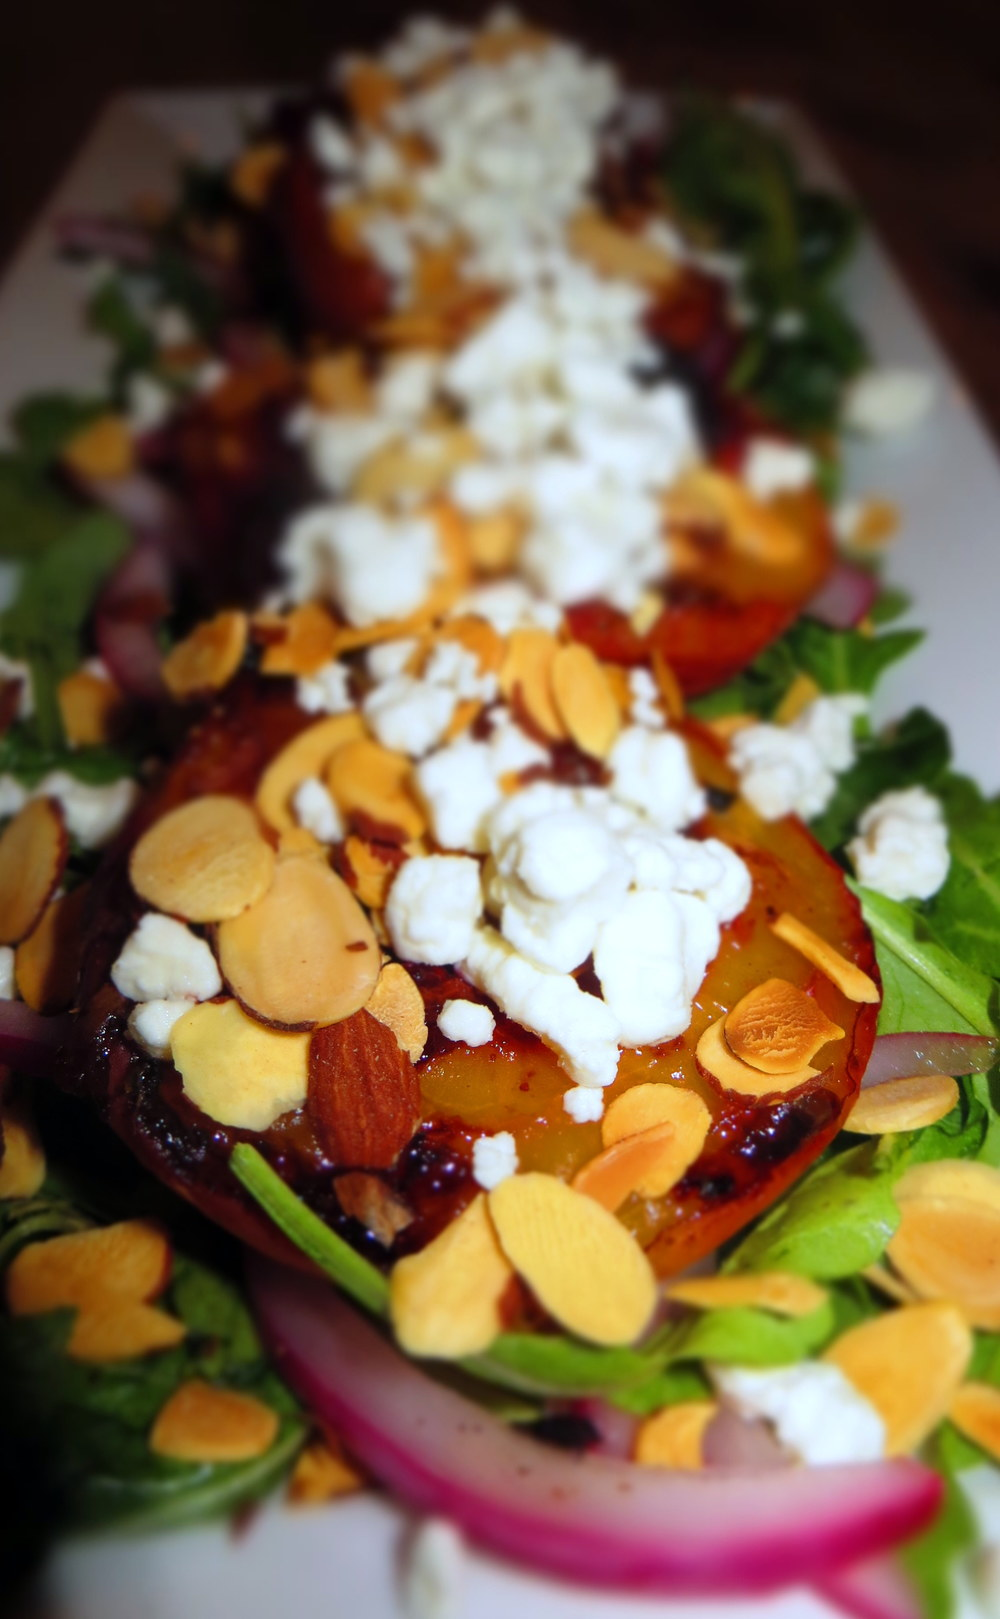 Basalmic, Grilled Nectarine, Arugula, Goat Cheese Salad Topped Off with Almond Silvers - Food by Lt!